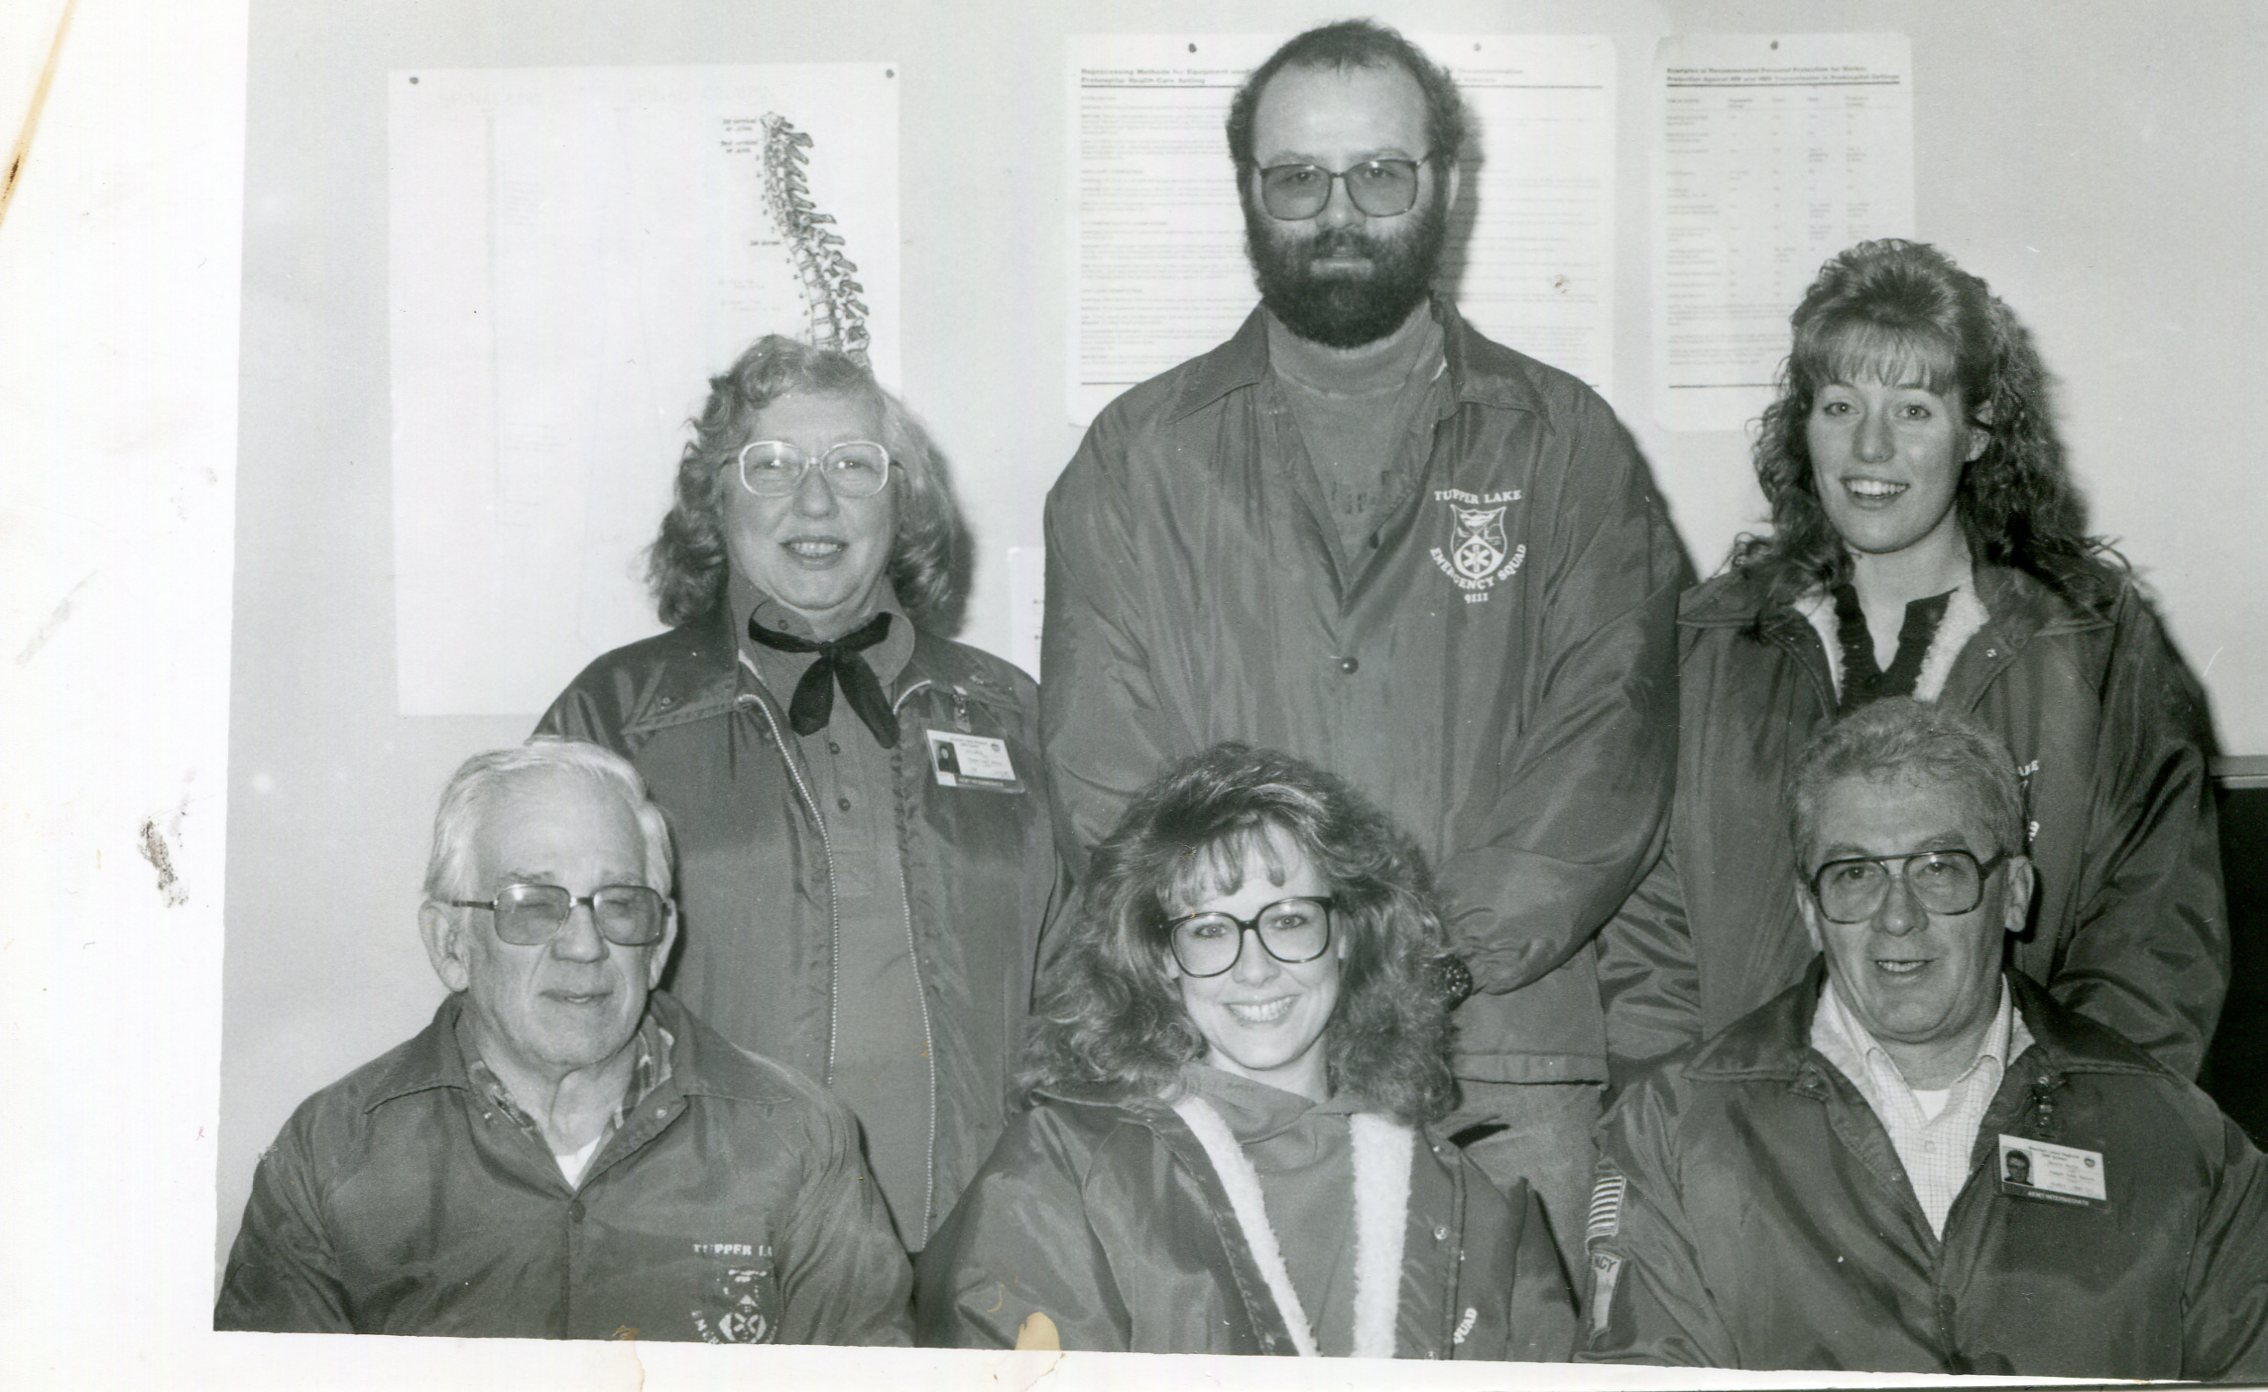 This 1992-era photo by Kathleen Bigrow shows some of the rescue squad's active volunteers at the time: front row from left- Maurice Corrow, Judy Duval and Ben Morin. In back from left were Ann LaVoy, Brian Dukette and Kim Mace.